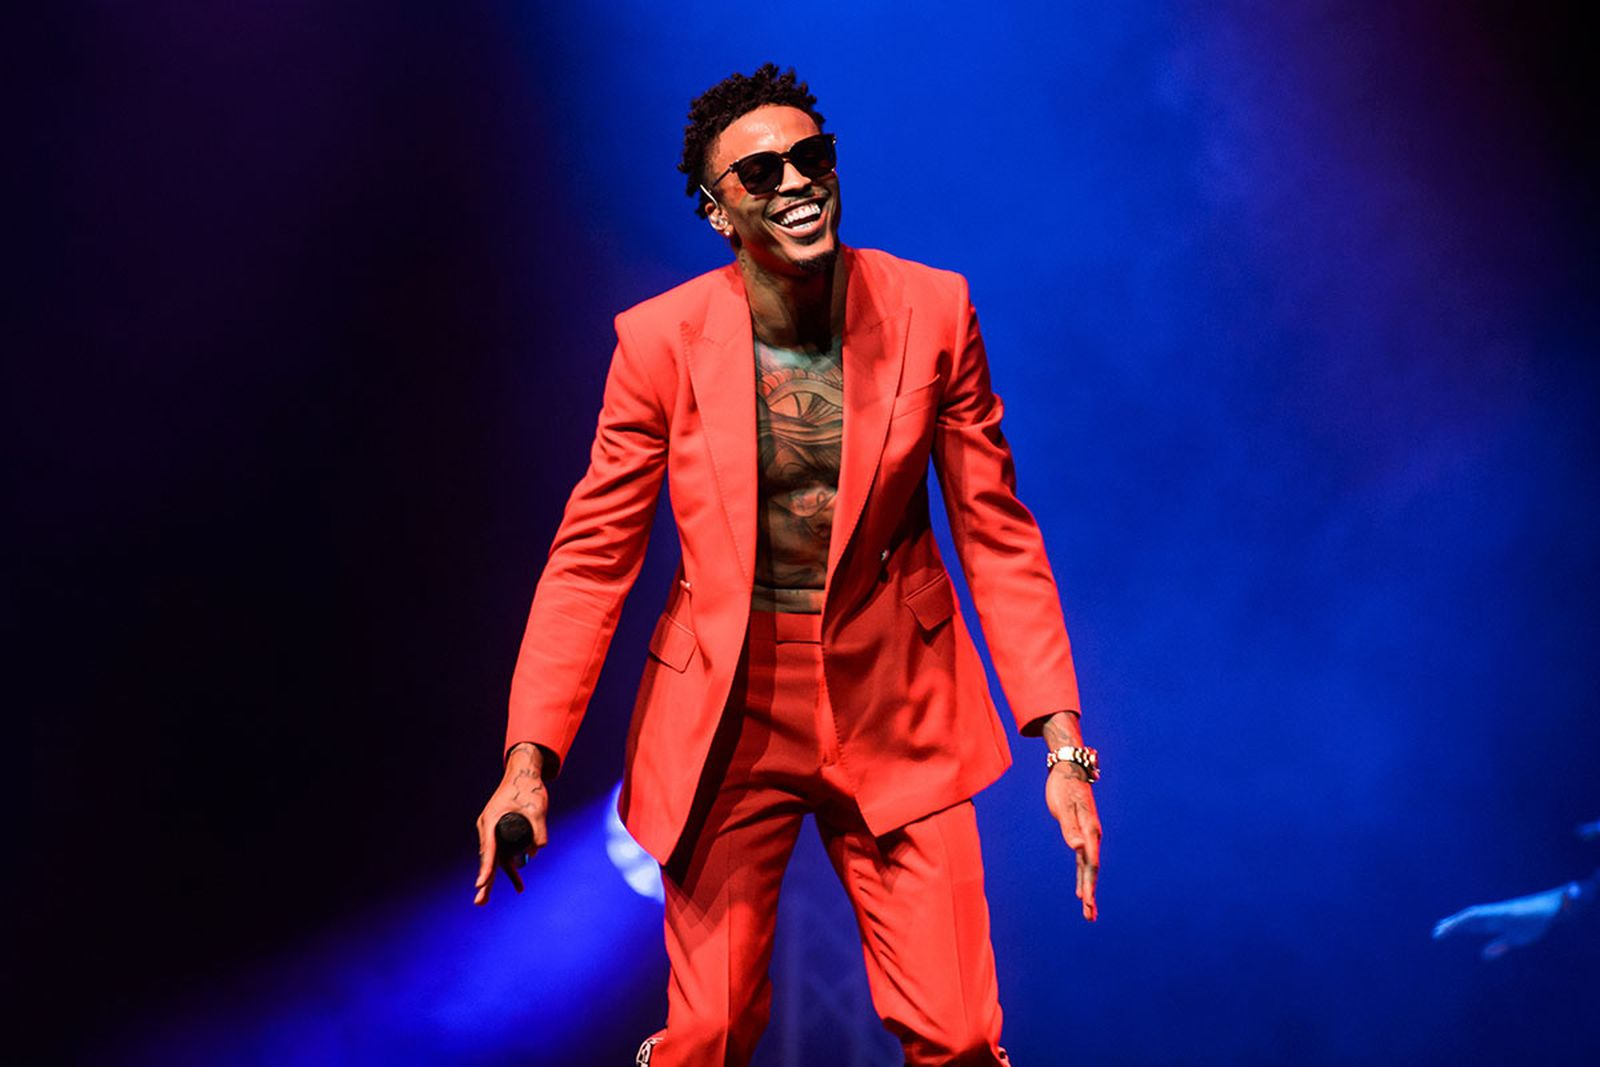 August Alsina performs live on stage at Indigo at The O2 Arena